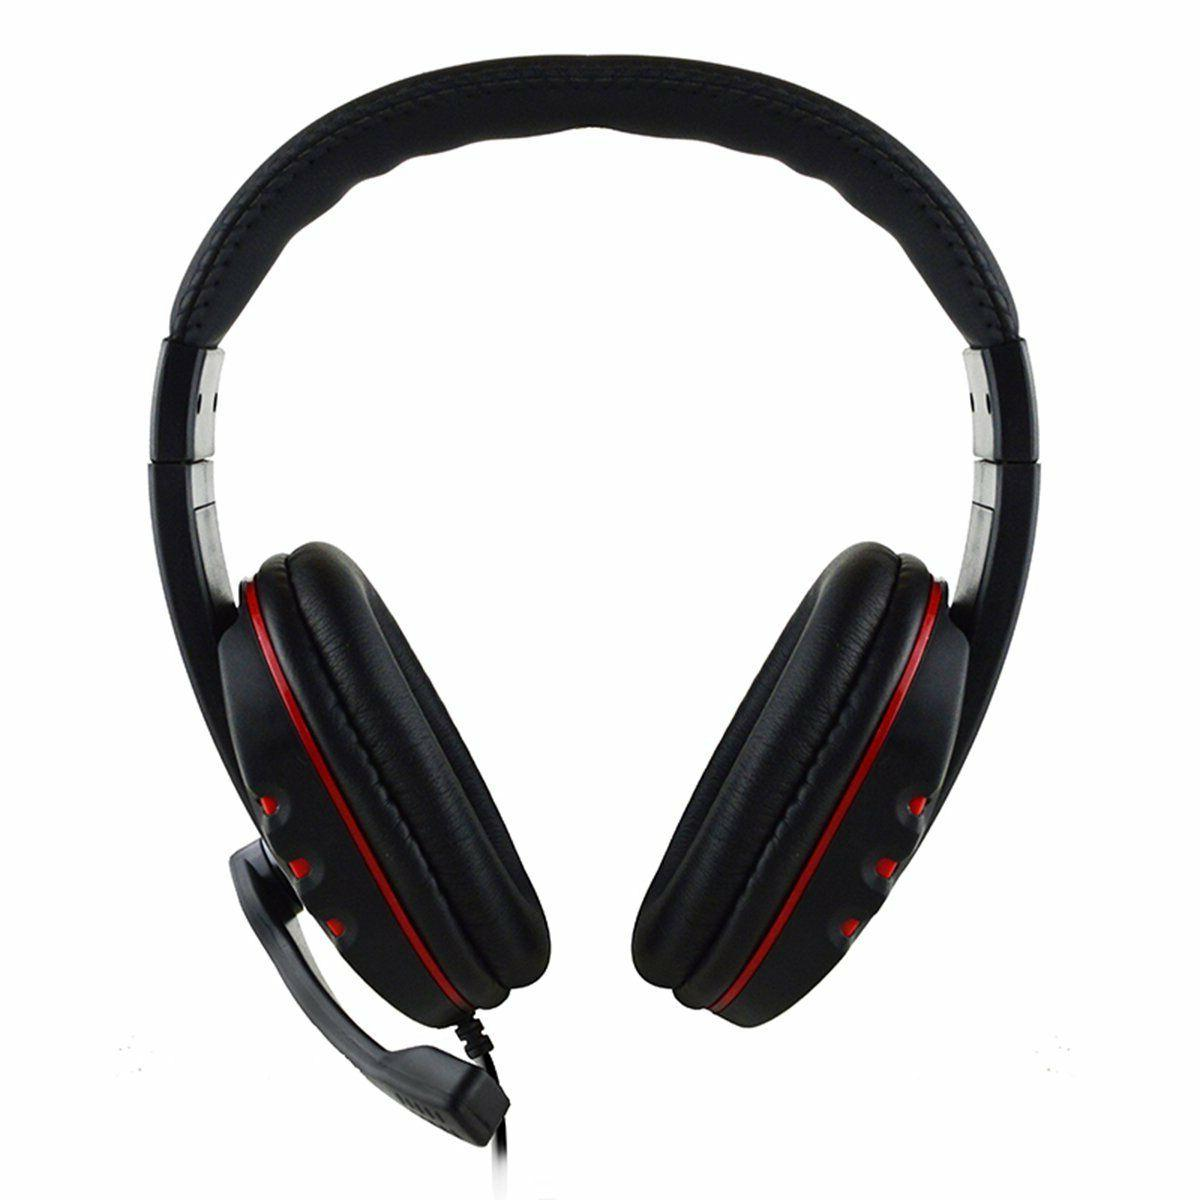 USA Gaming Headset Stereo Surround Headphone w/ Mic For PS4 Xbox